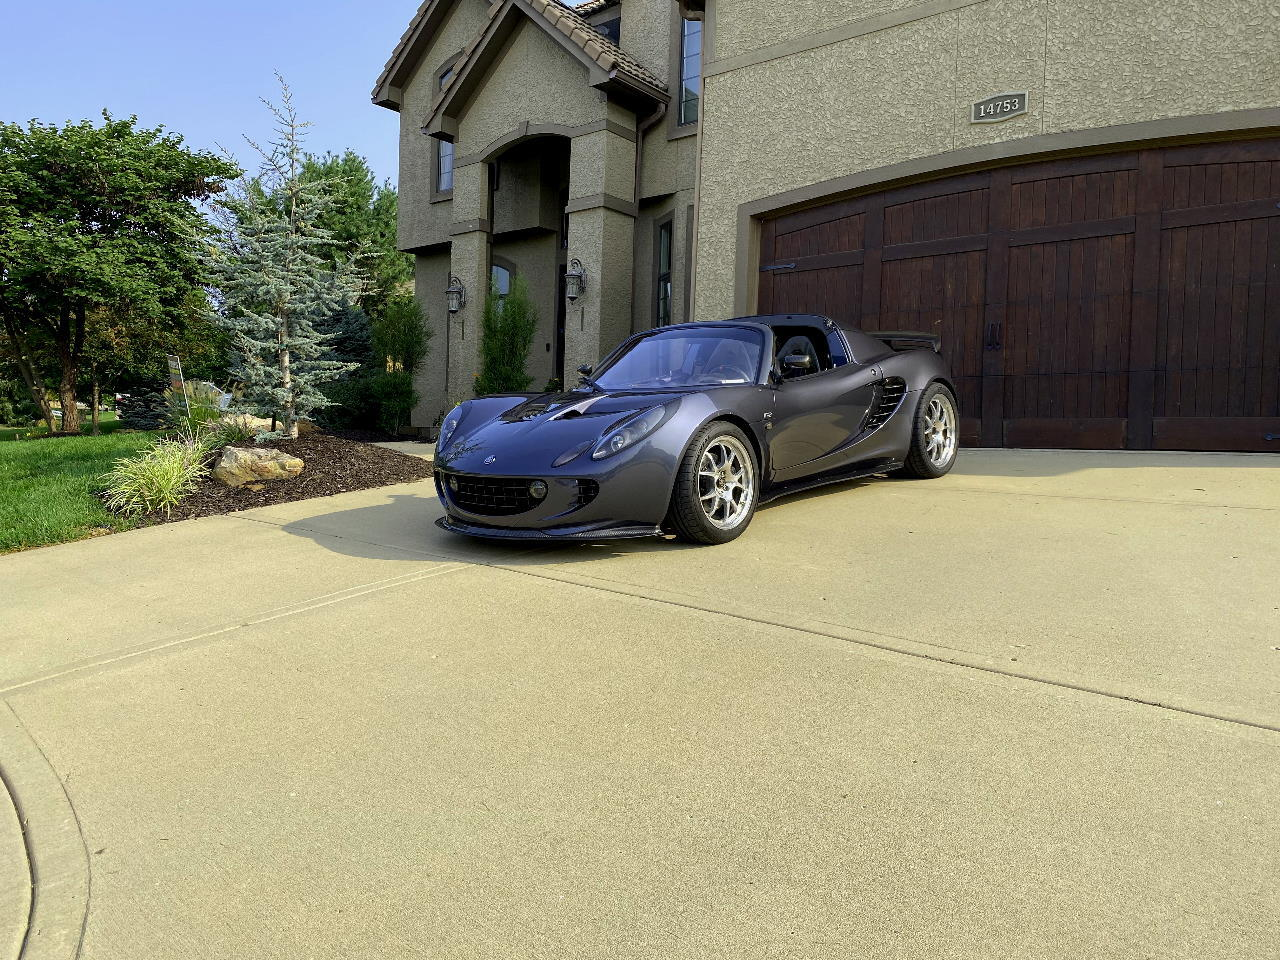 Midnight Silver 2005 Lotus Elise LSS